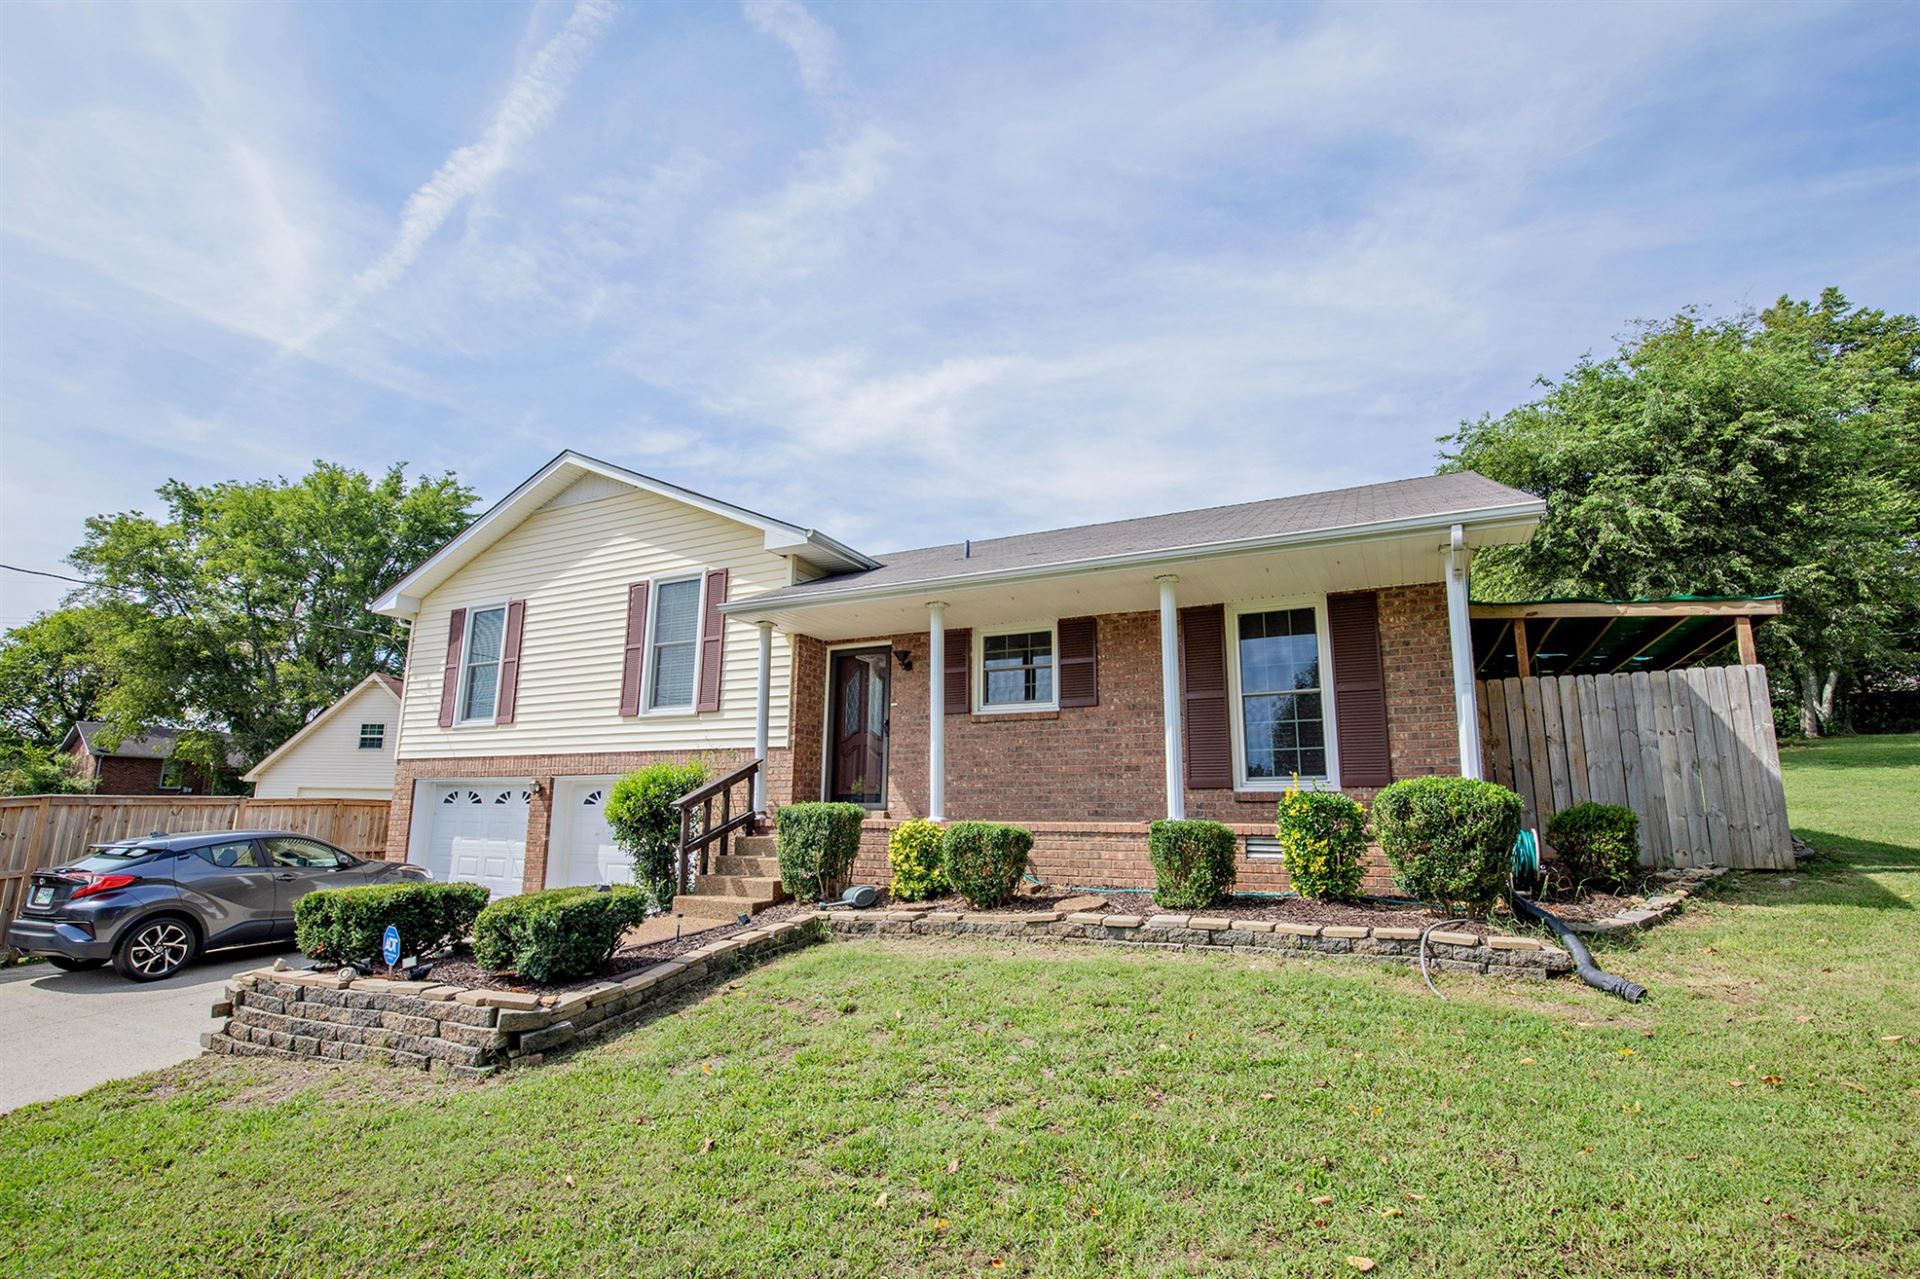 114 Forest View Dr, Hendersonville, TN 37075 - MLS#: 2288221